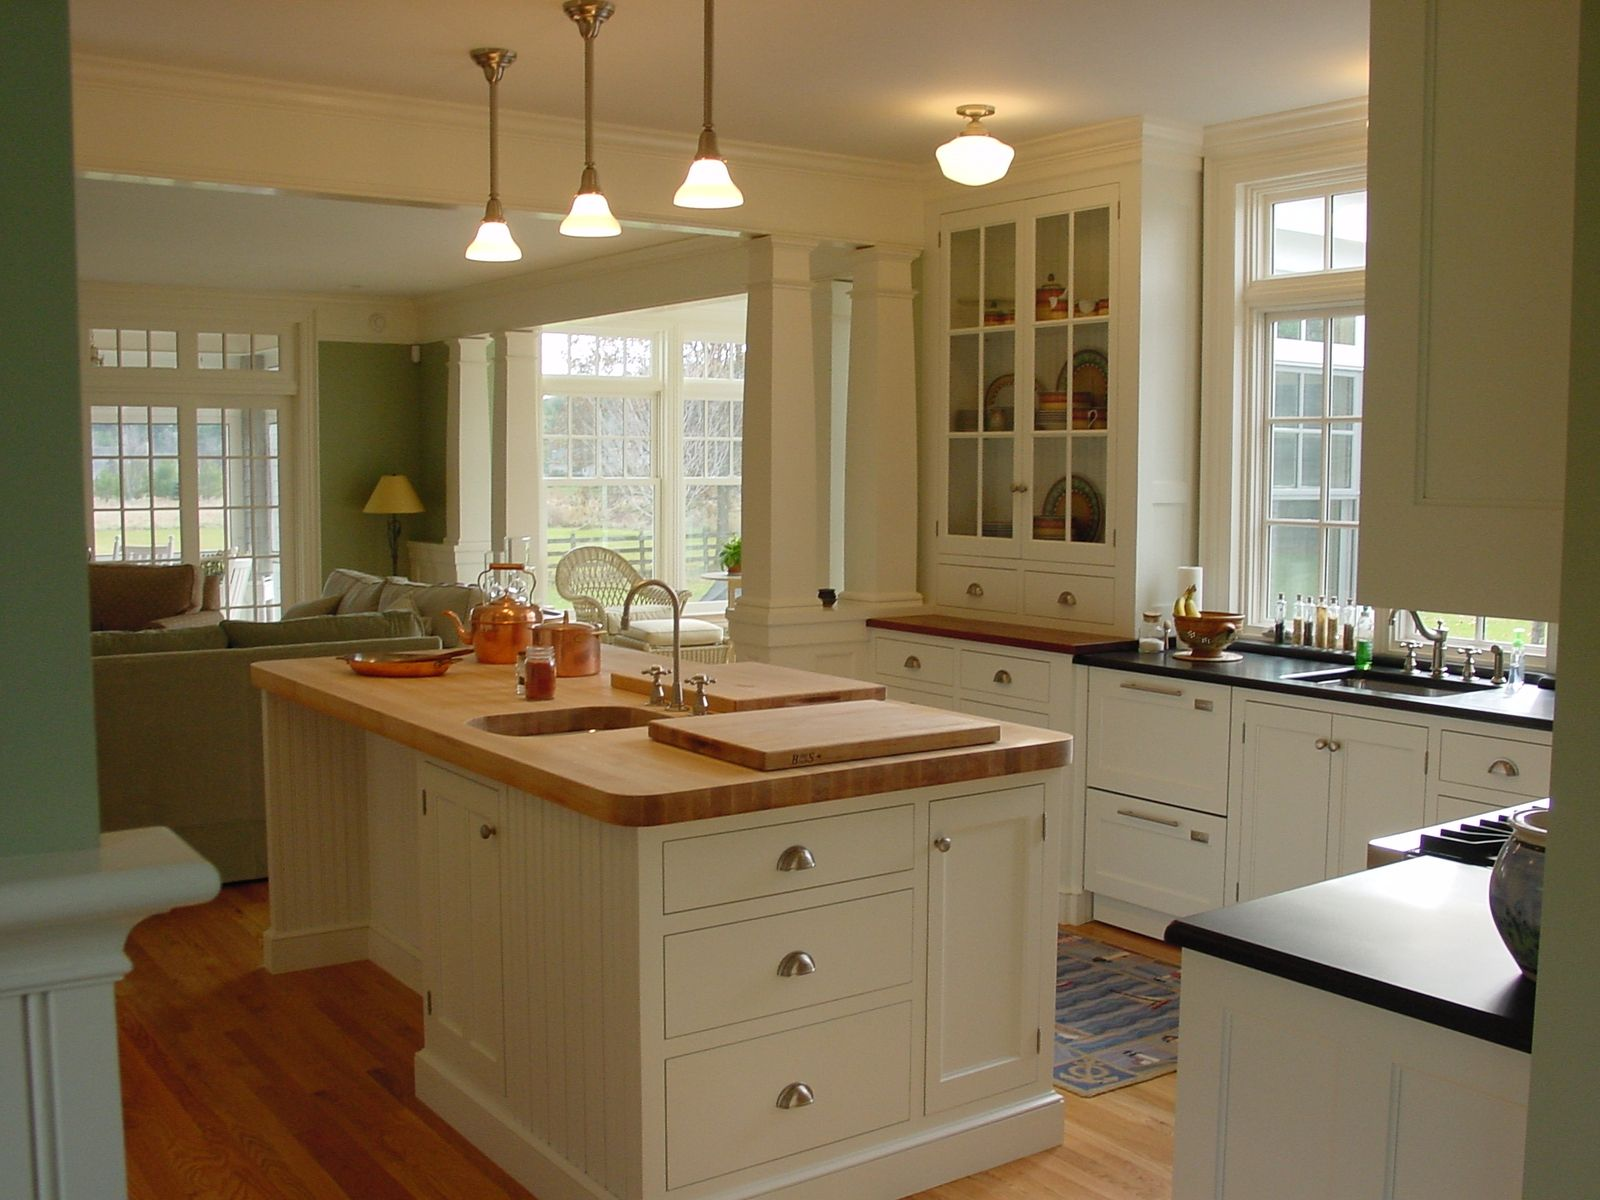 Classic Kitchen..love it!